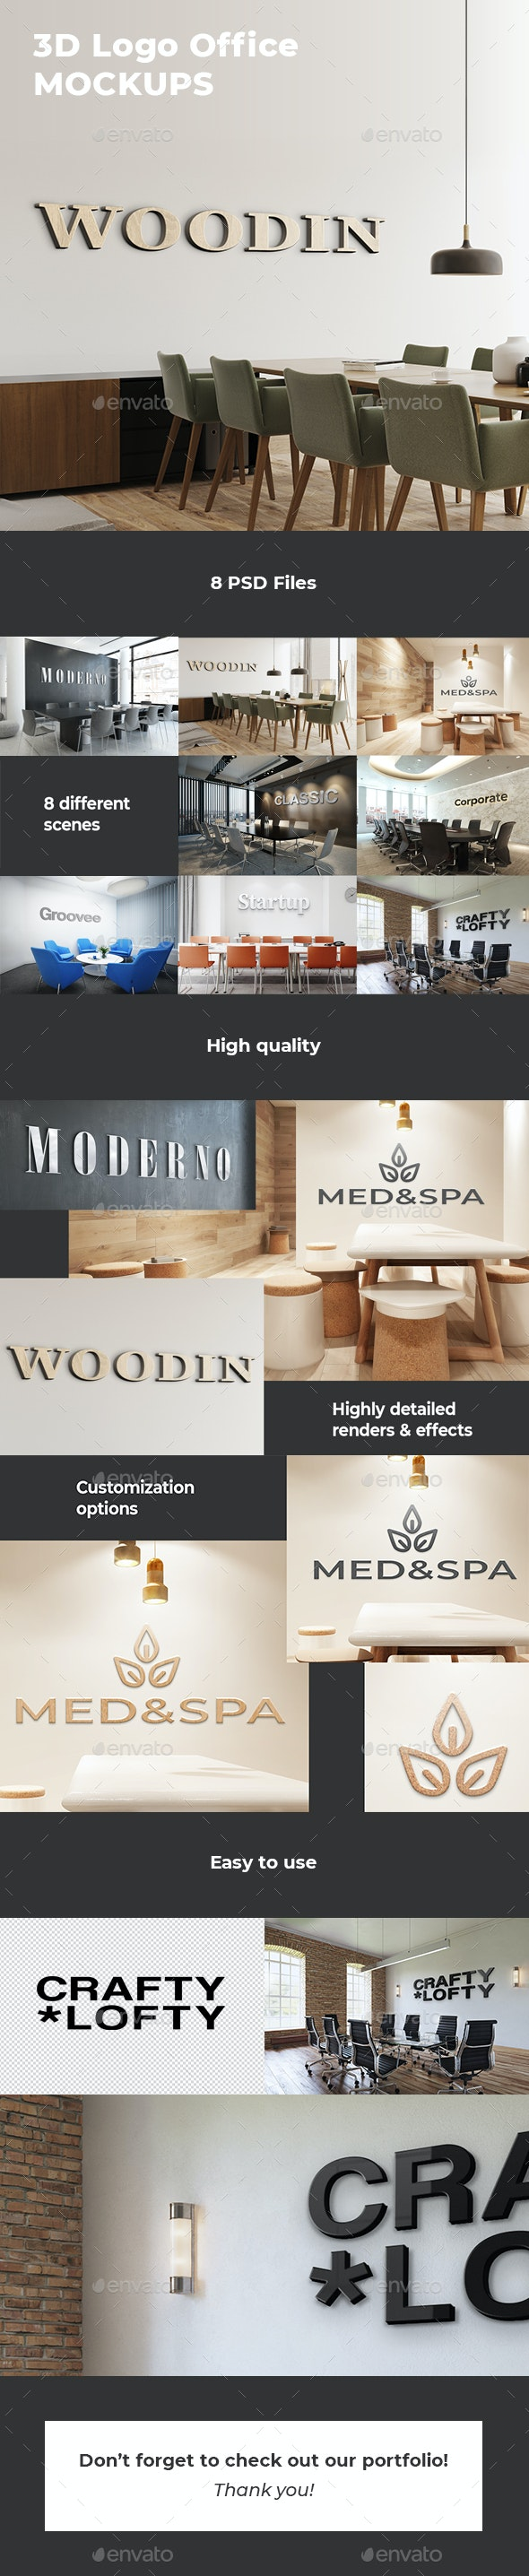 3D Logo Office Mockups - Logo Product Mock-Ups